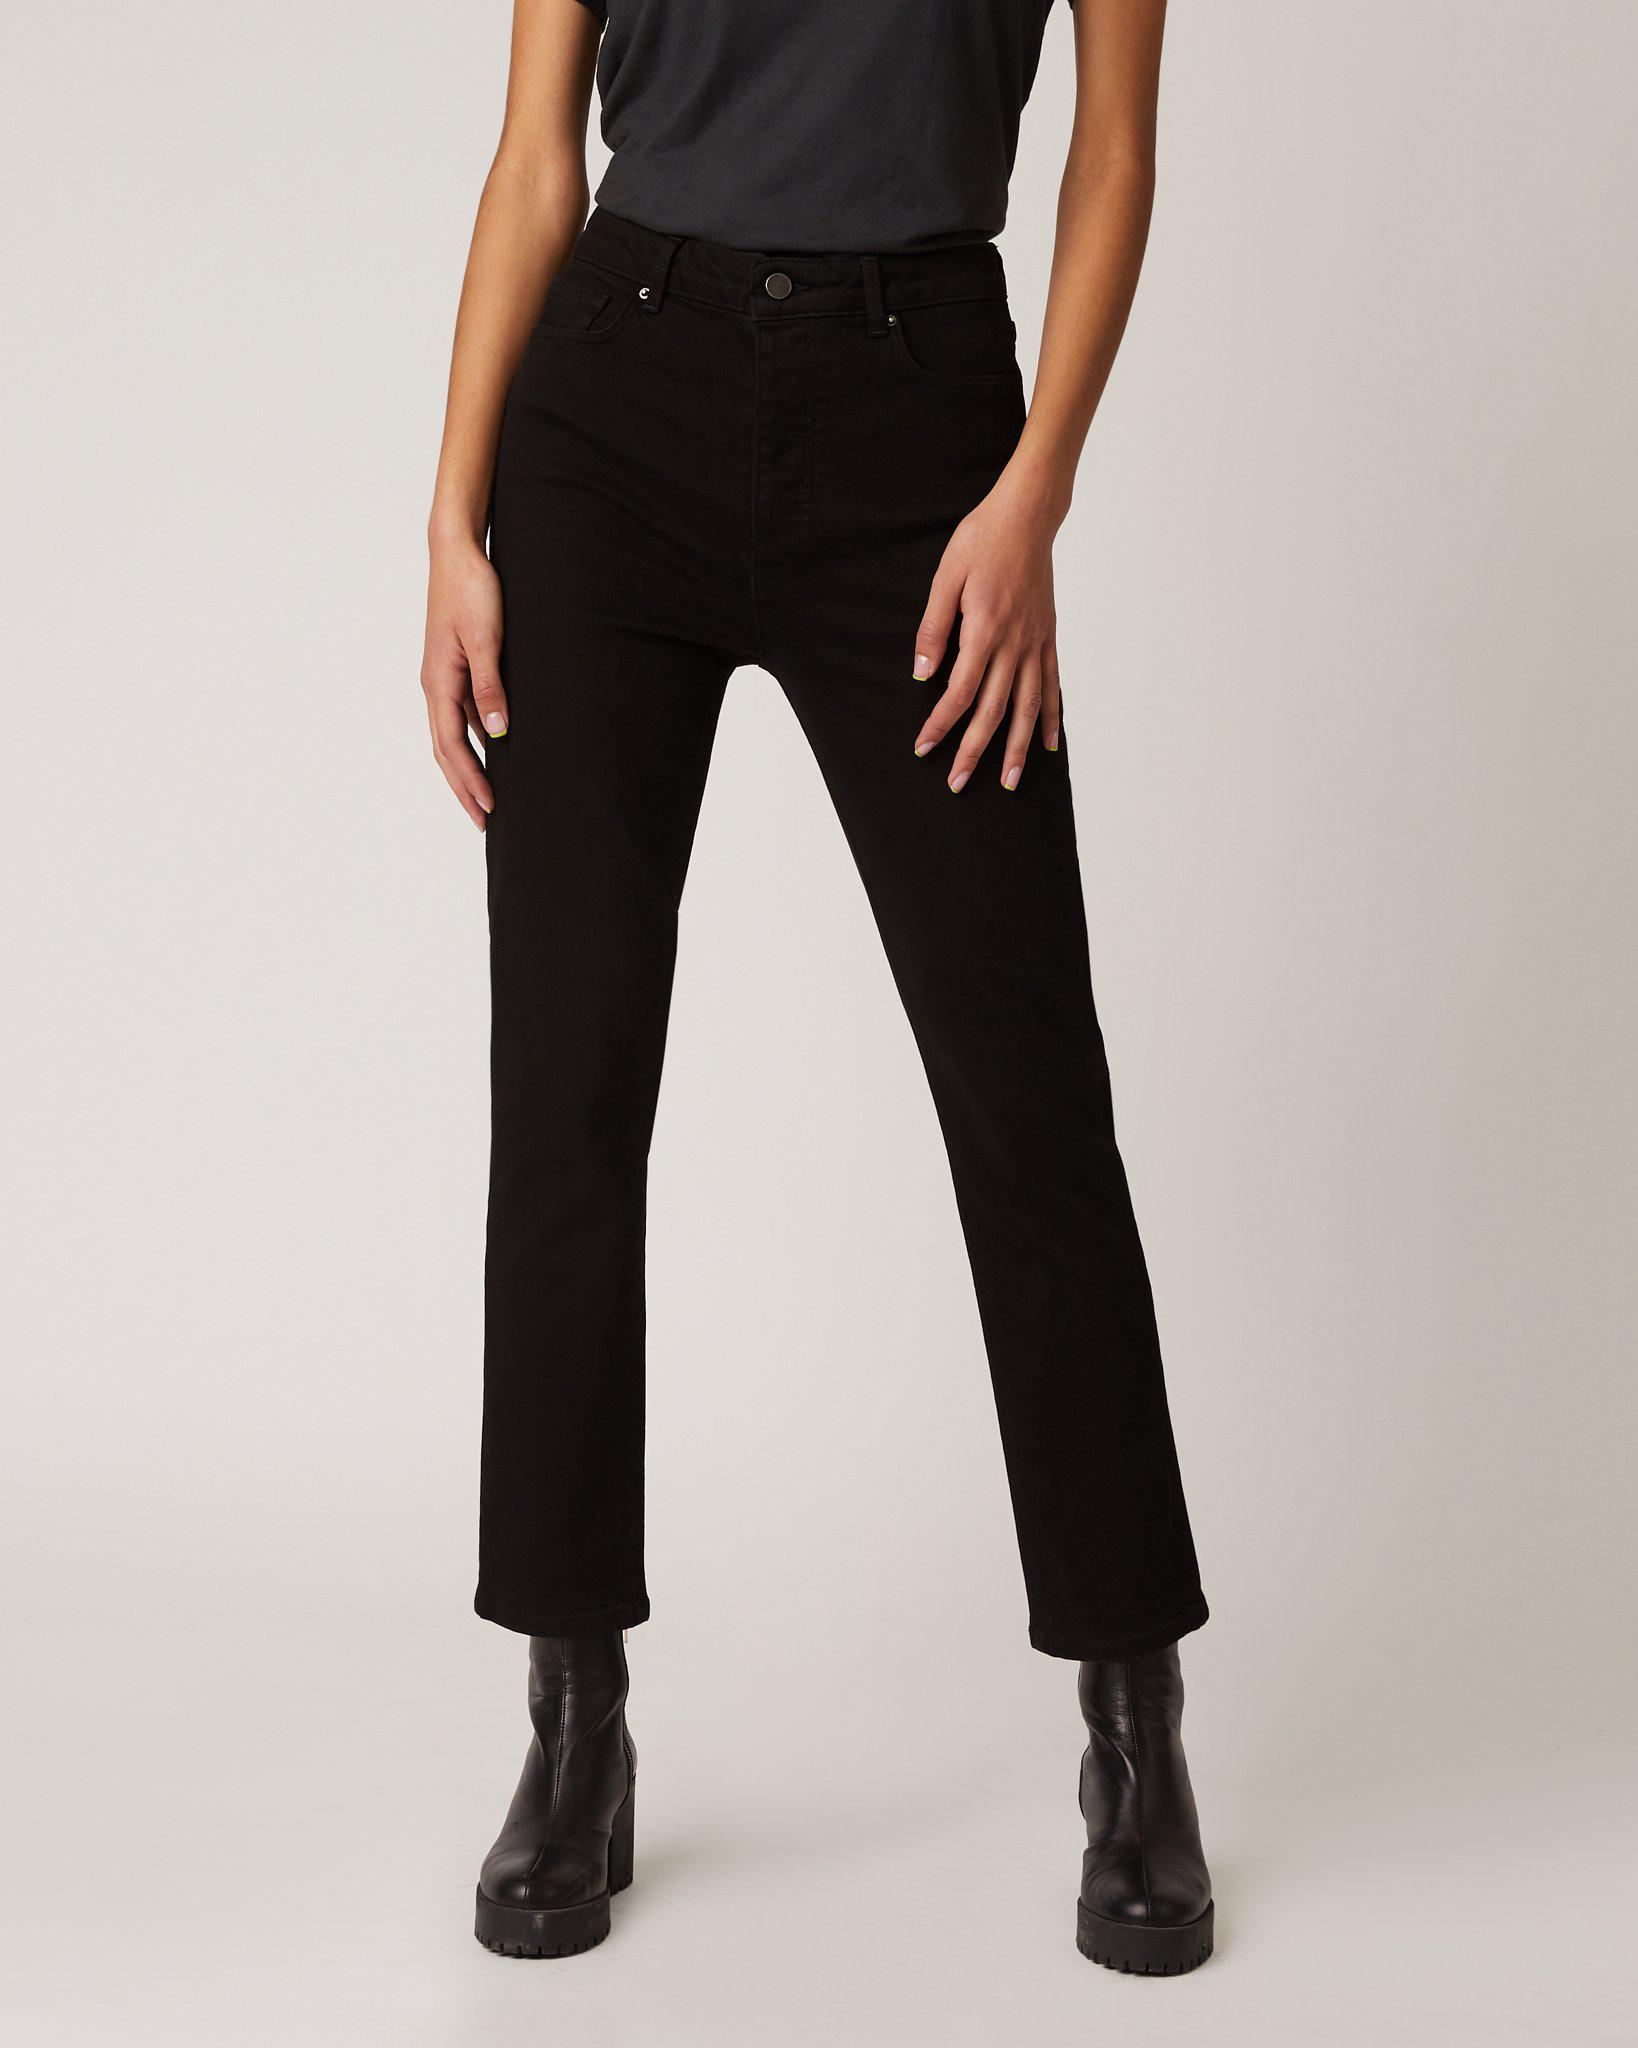 MGNTC Straight Jeans in Method 1